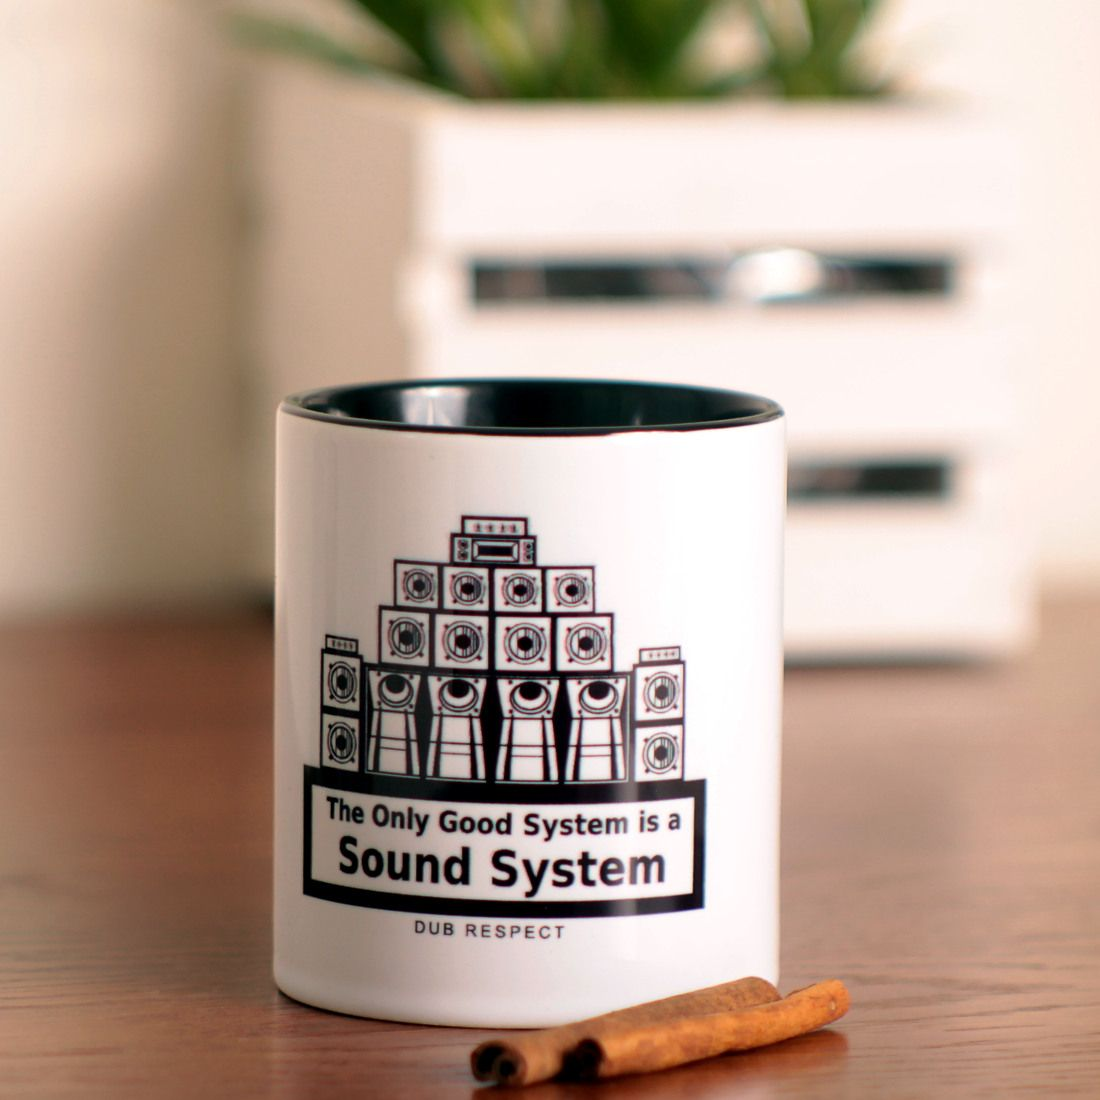 Rasta Accessories » Mugs & Cups » The Only good system is a